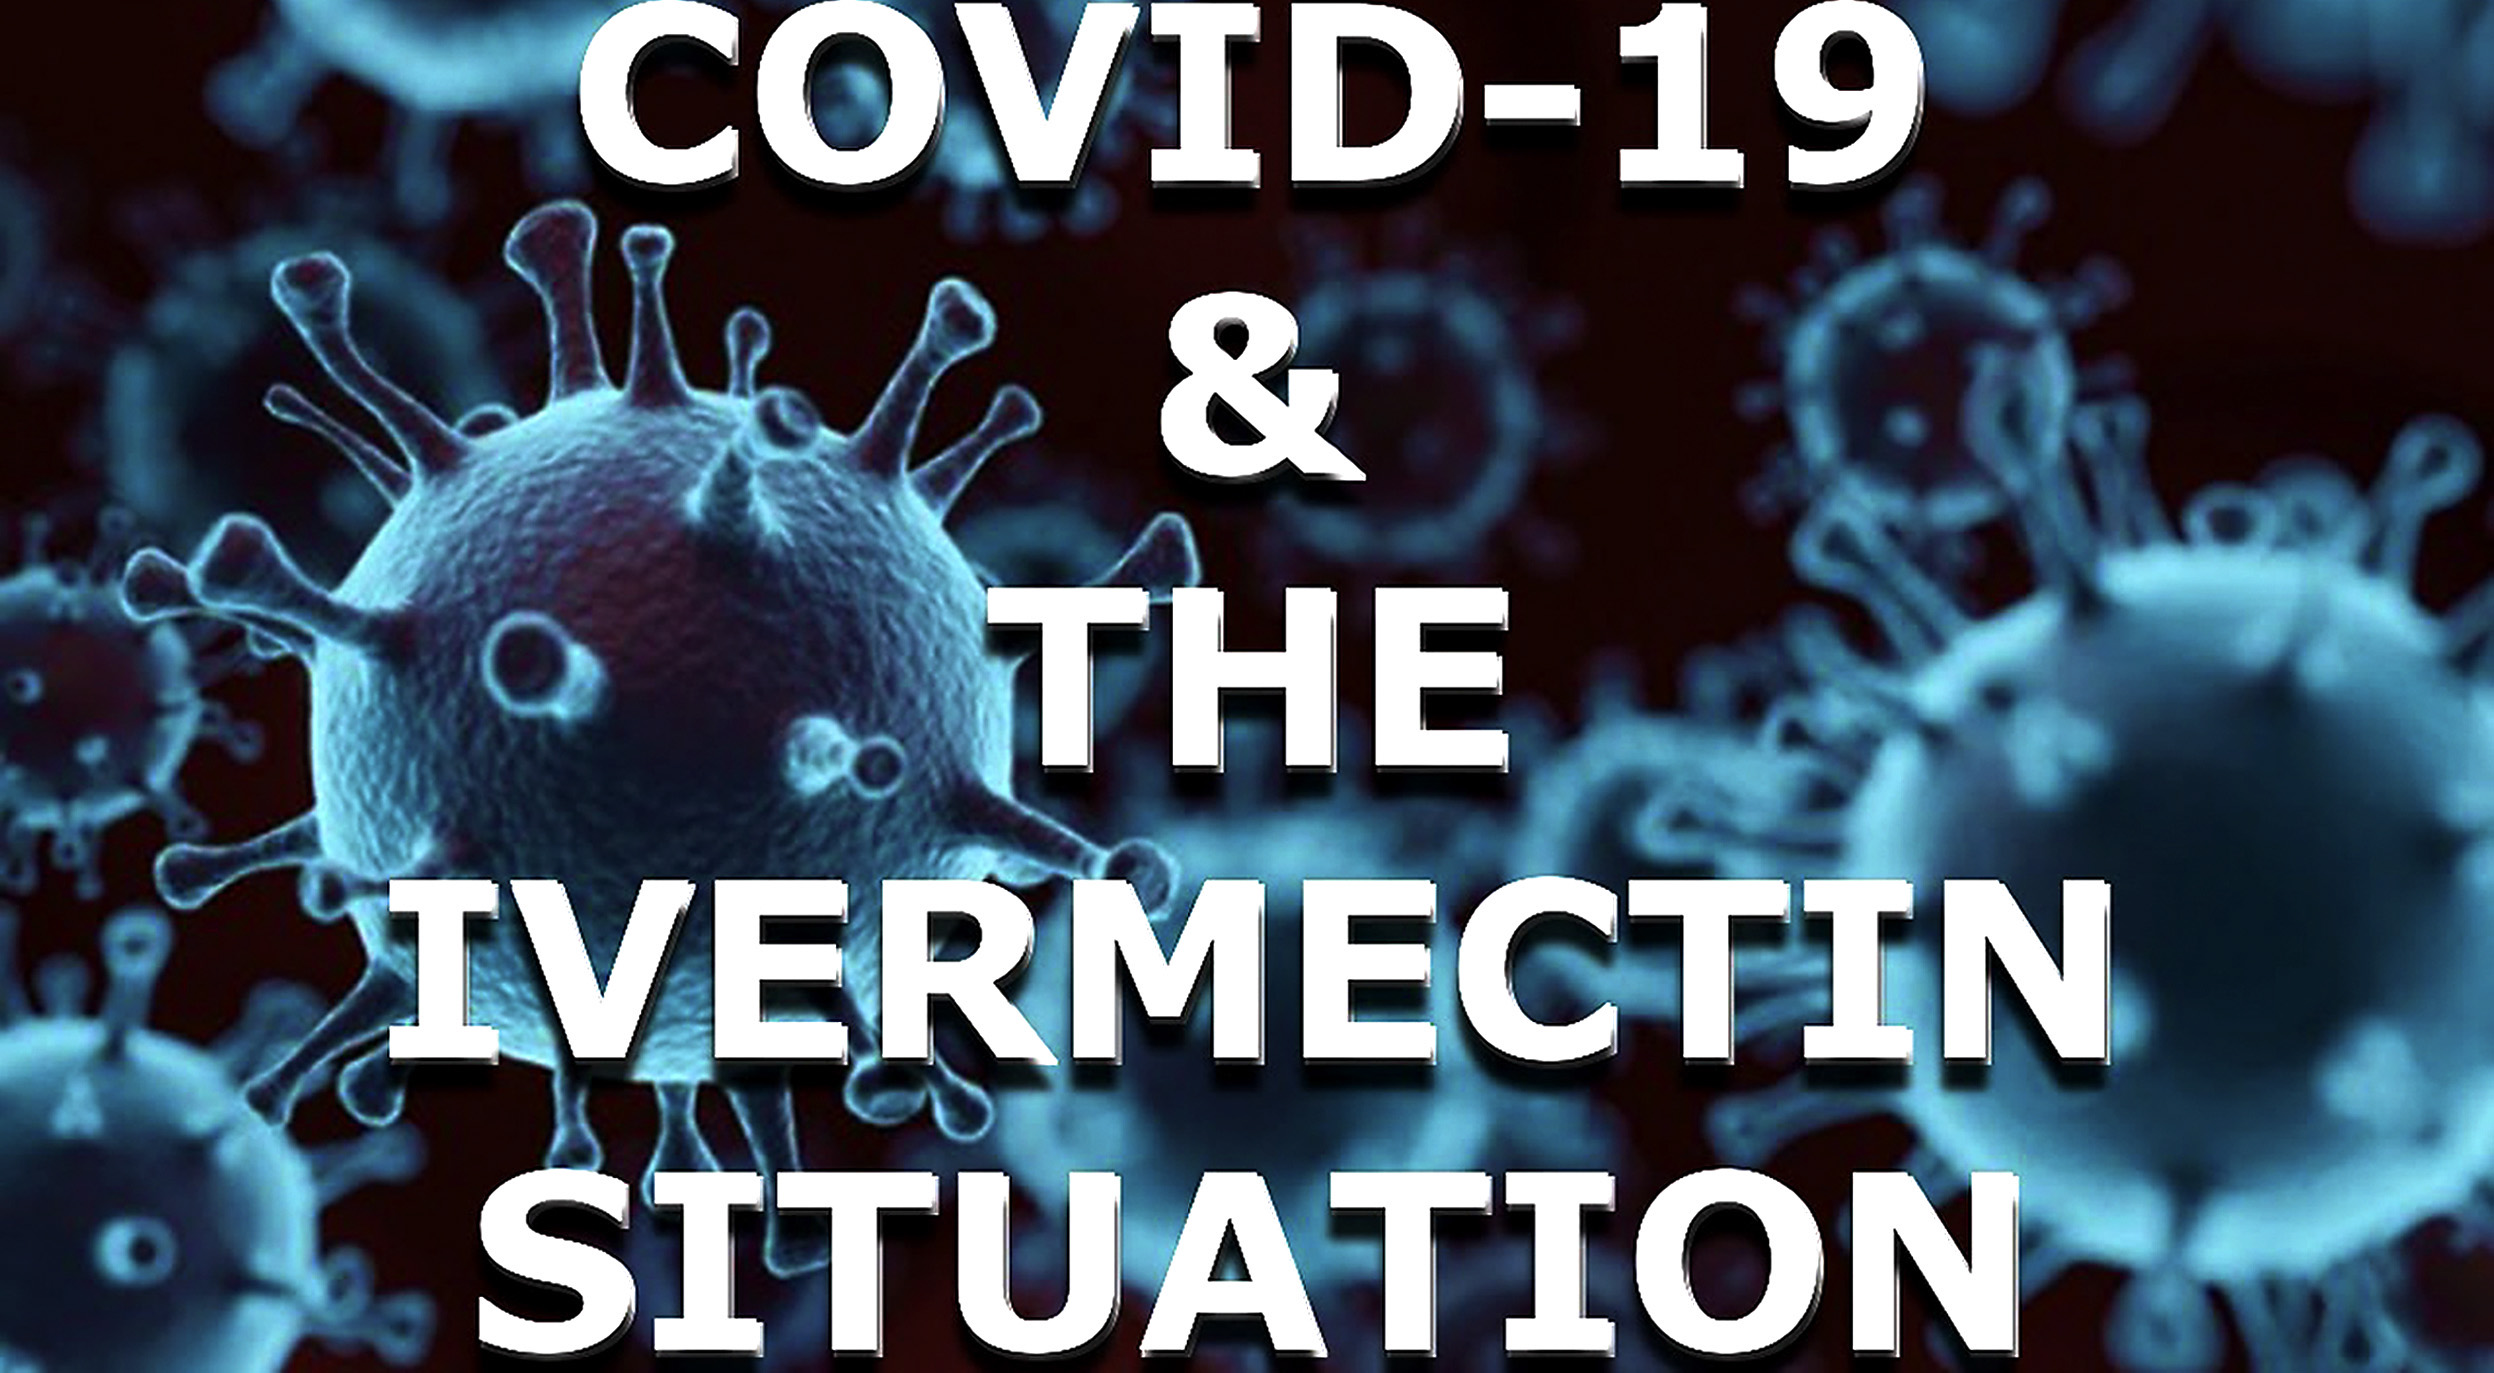 Little to lose: A doctor argues we must start using ivermectin now - dailymaverick.co.za